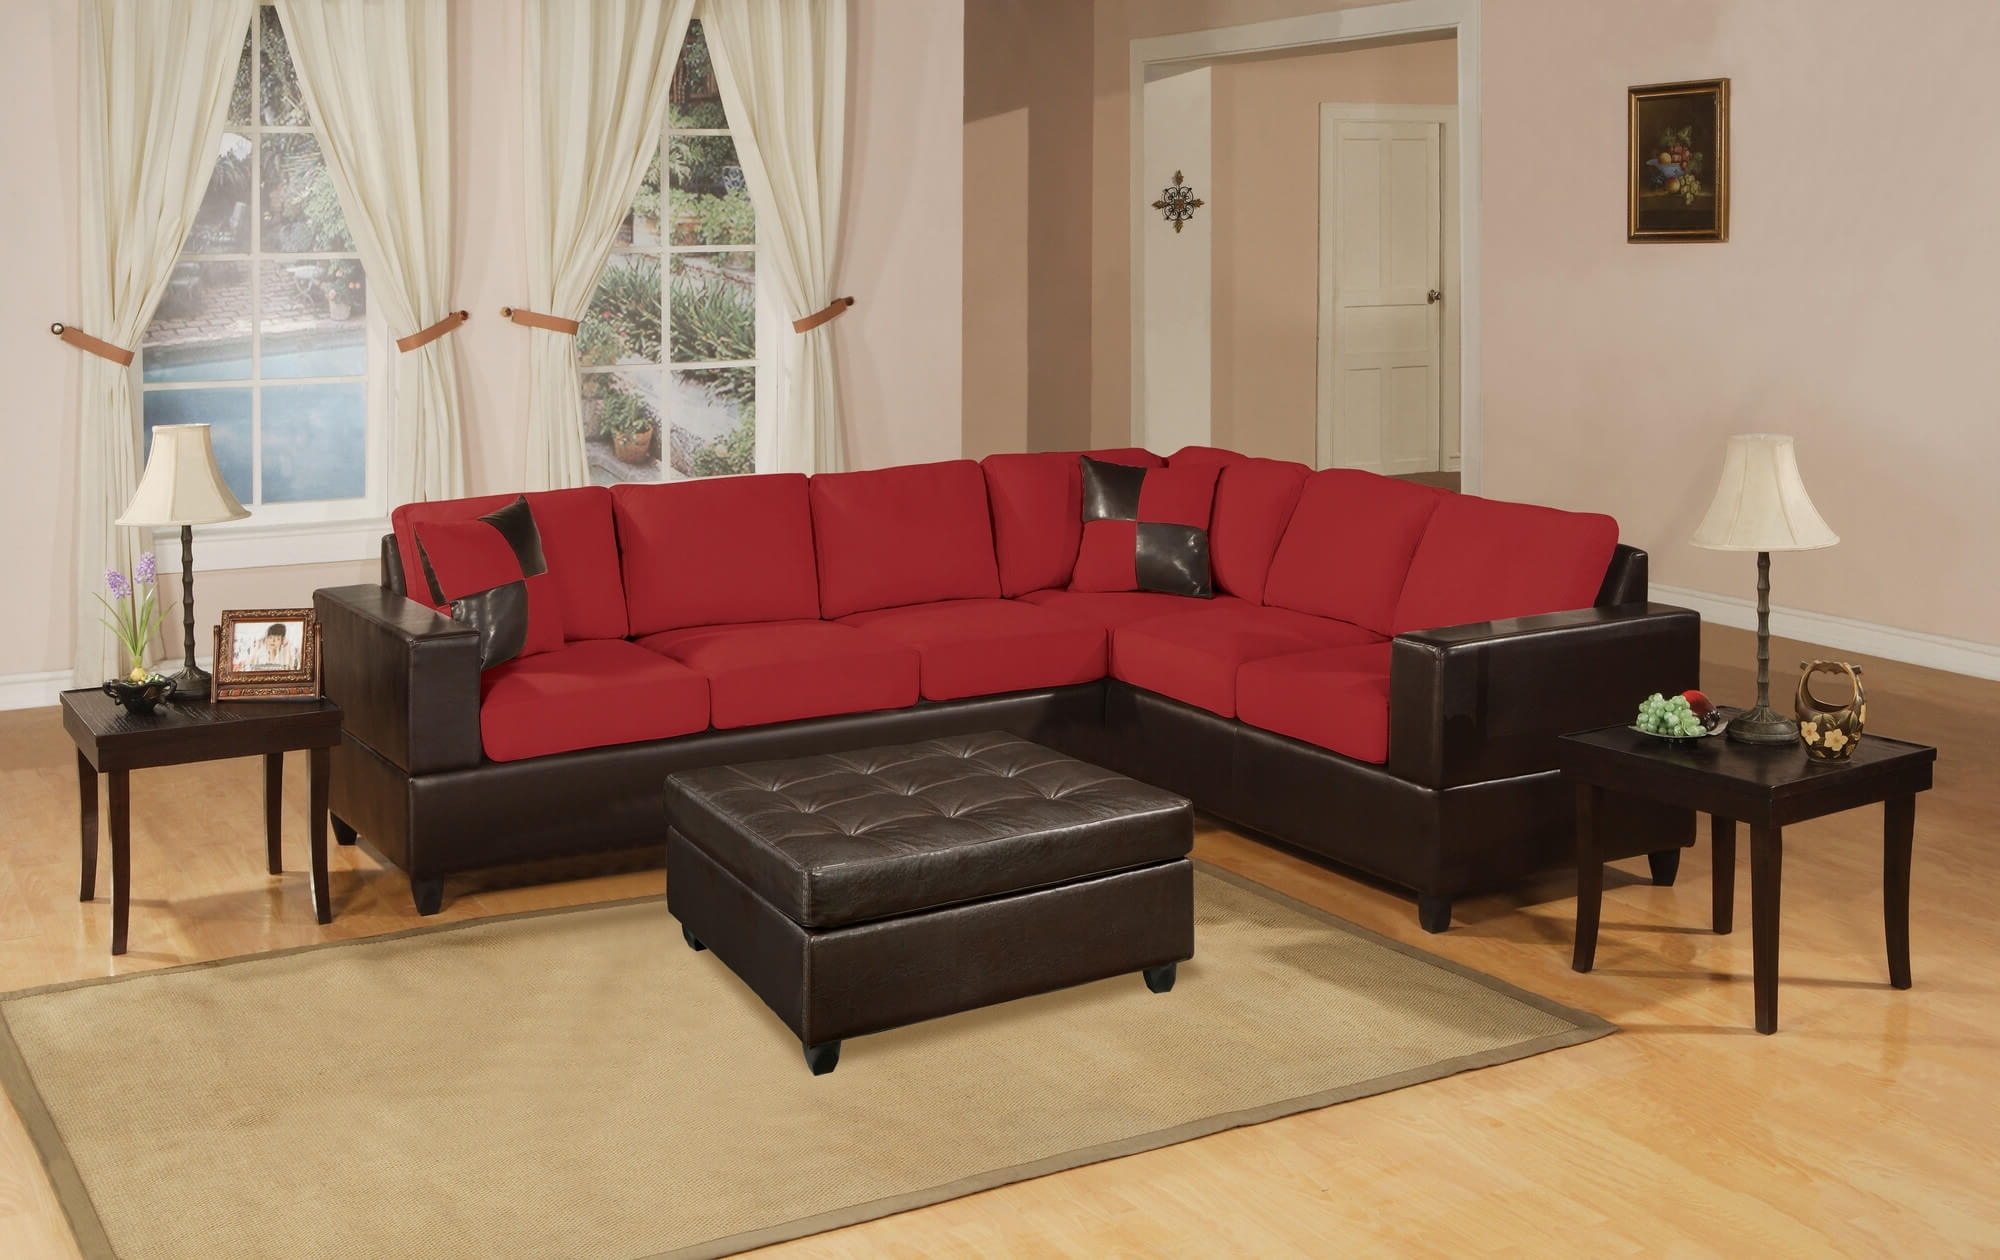 Preferred Red Sectional Sofas With 18 Stylish Modern Red Sectional Sofas (View 13 of 15)